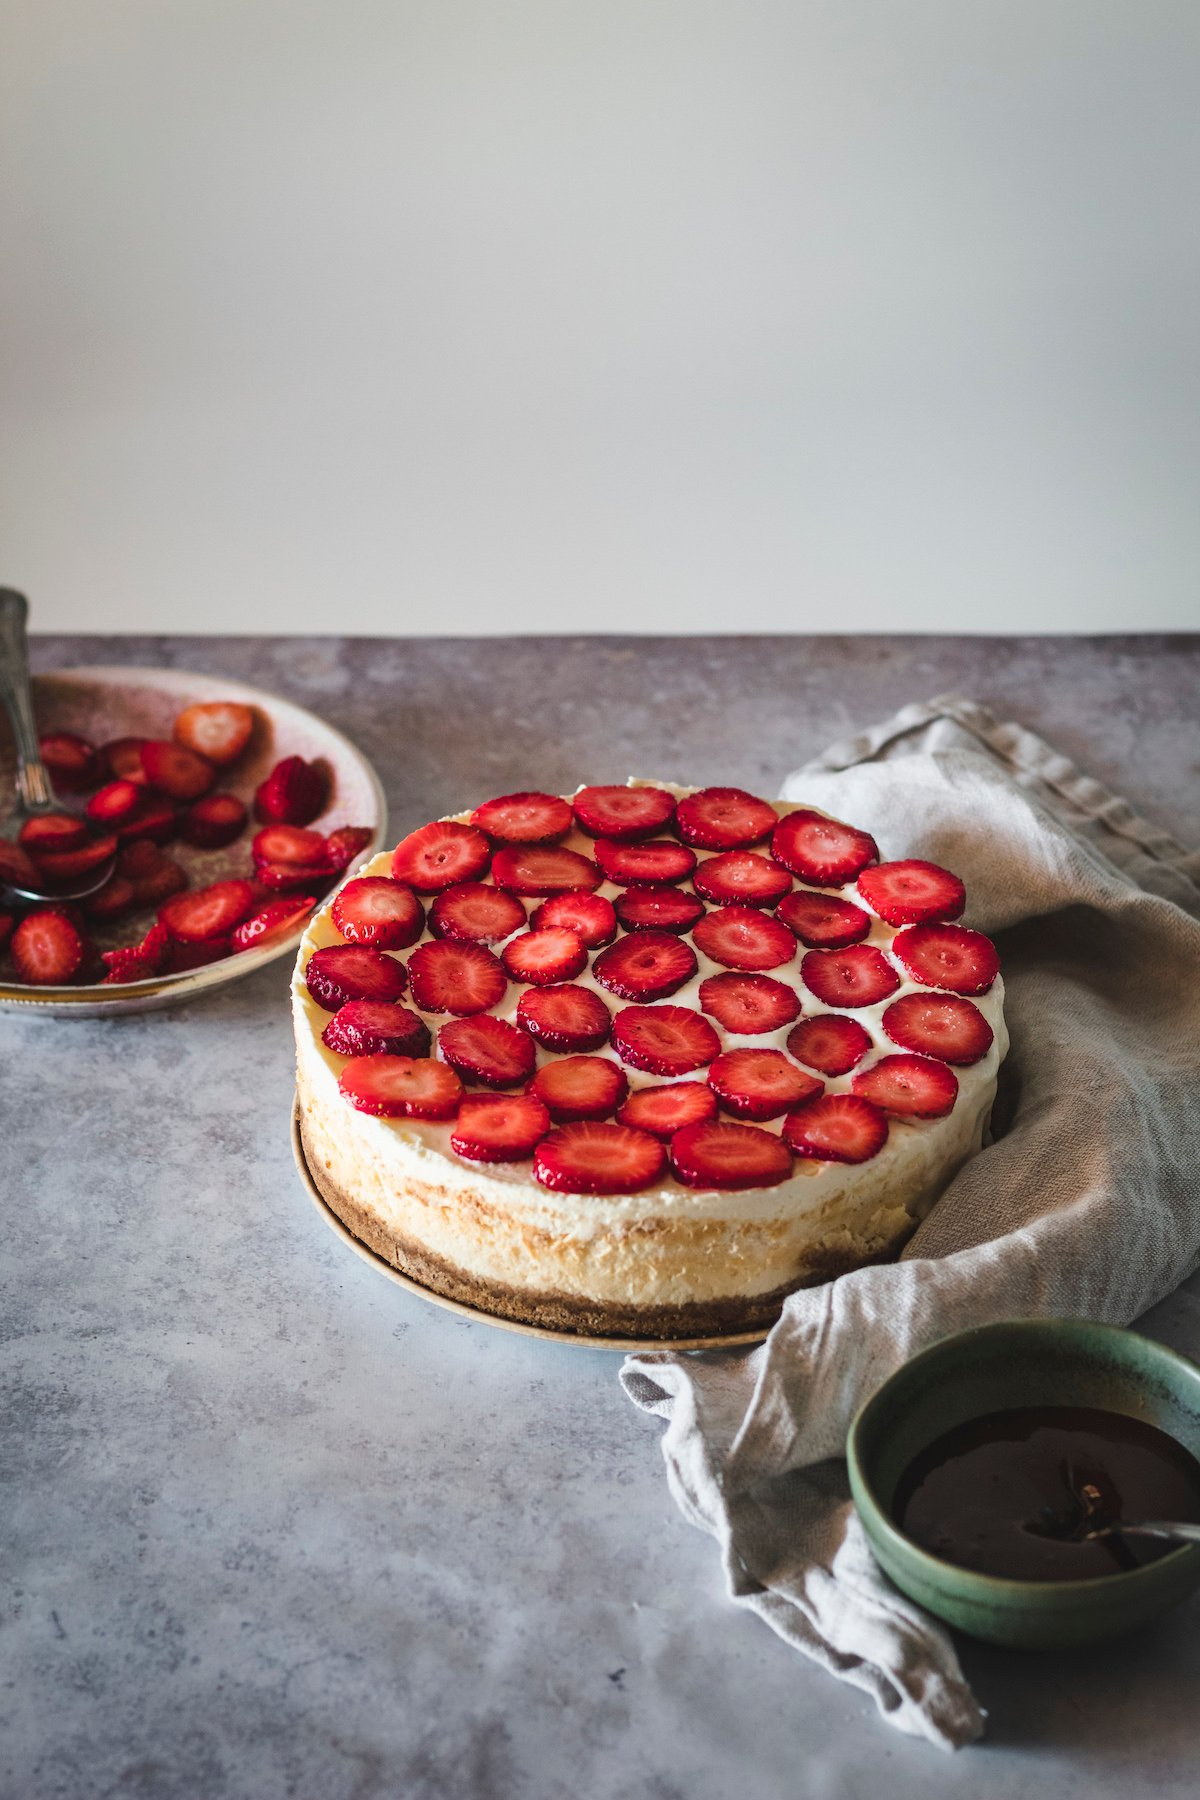 Sliced strawberries on top of a cheesecake.